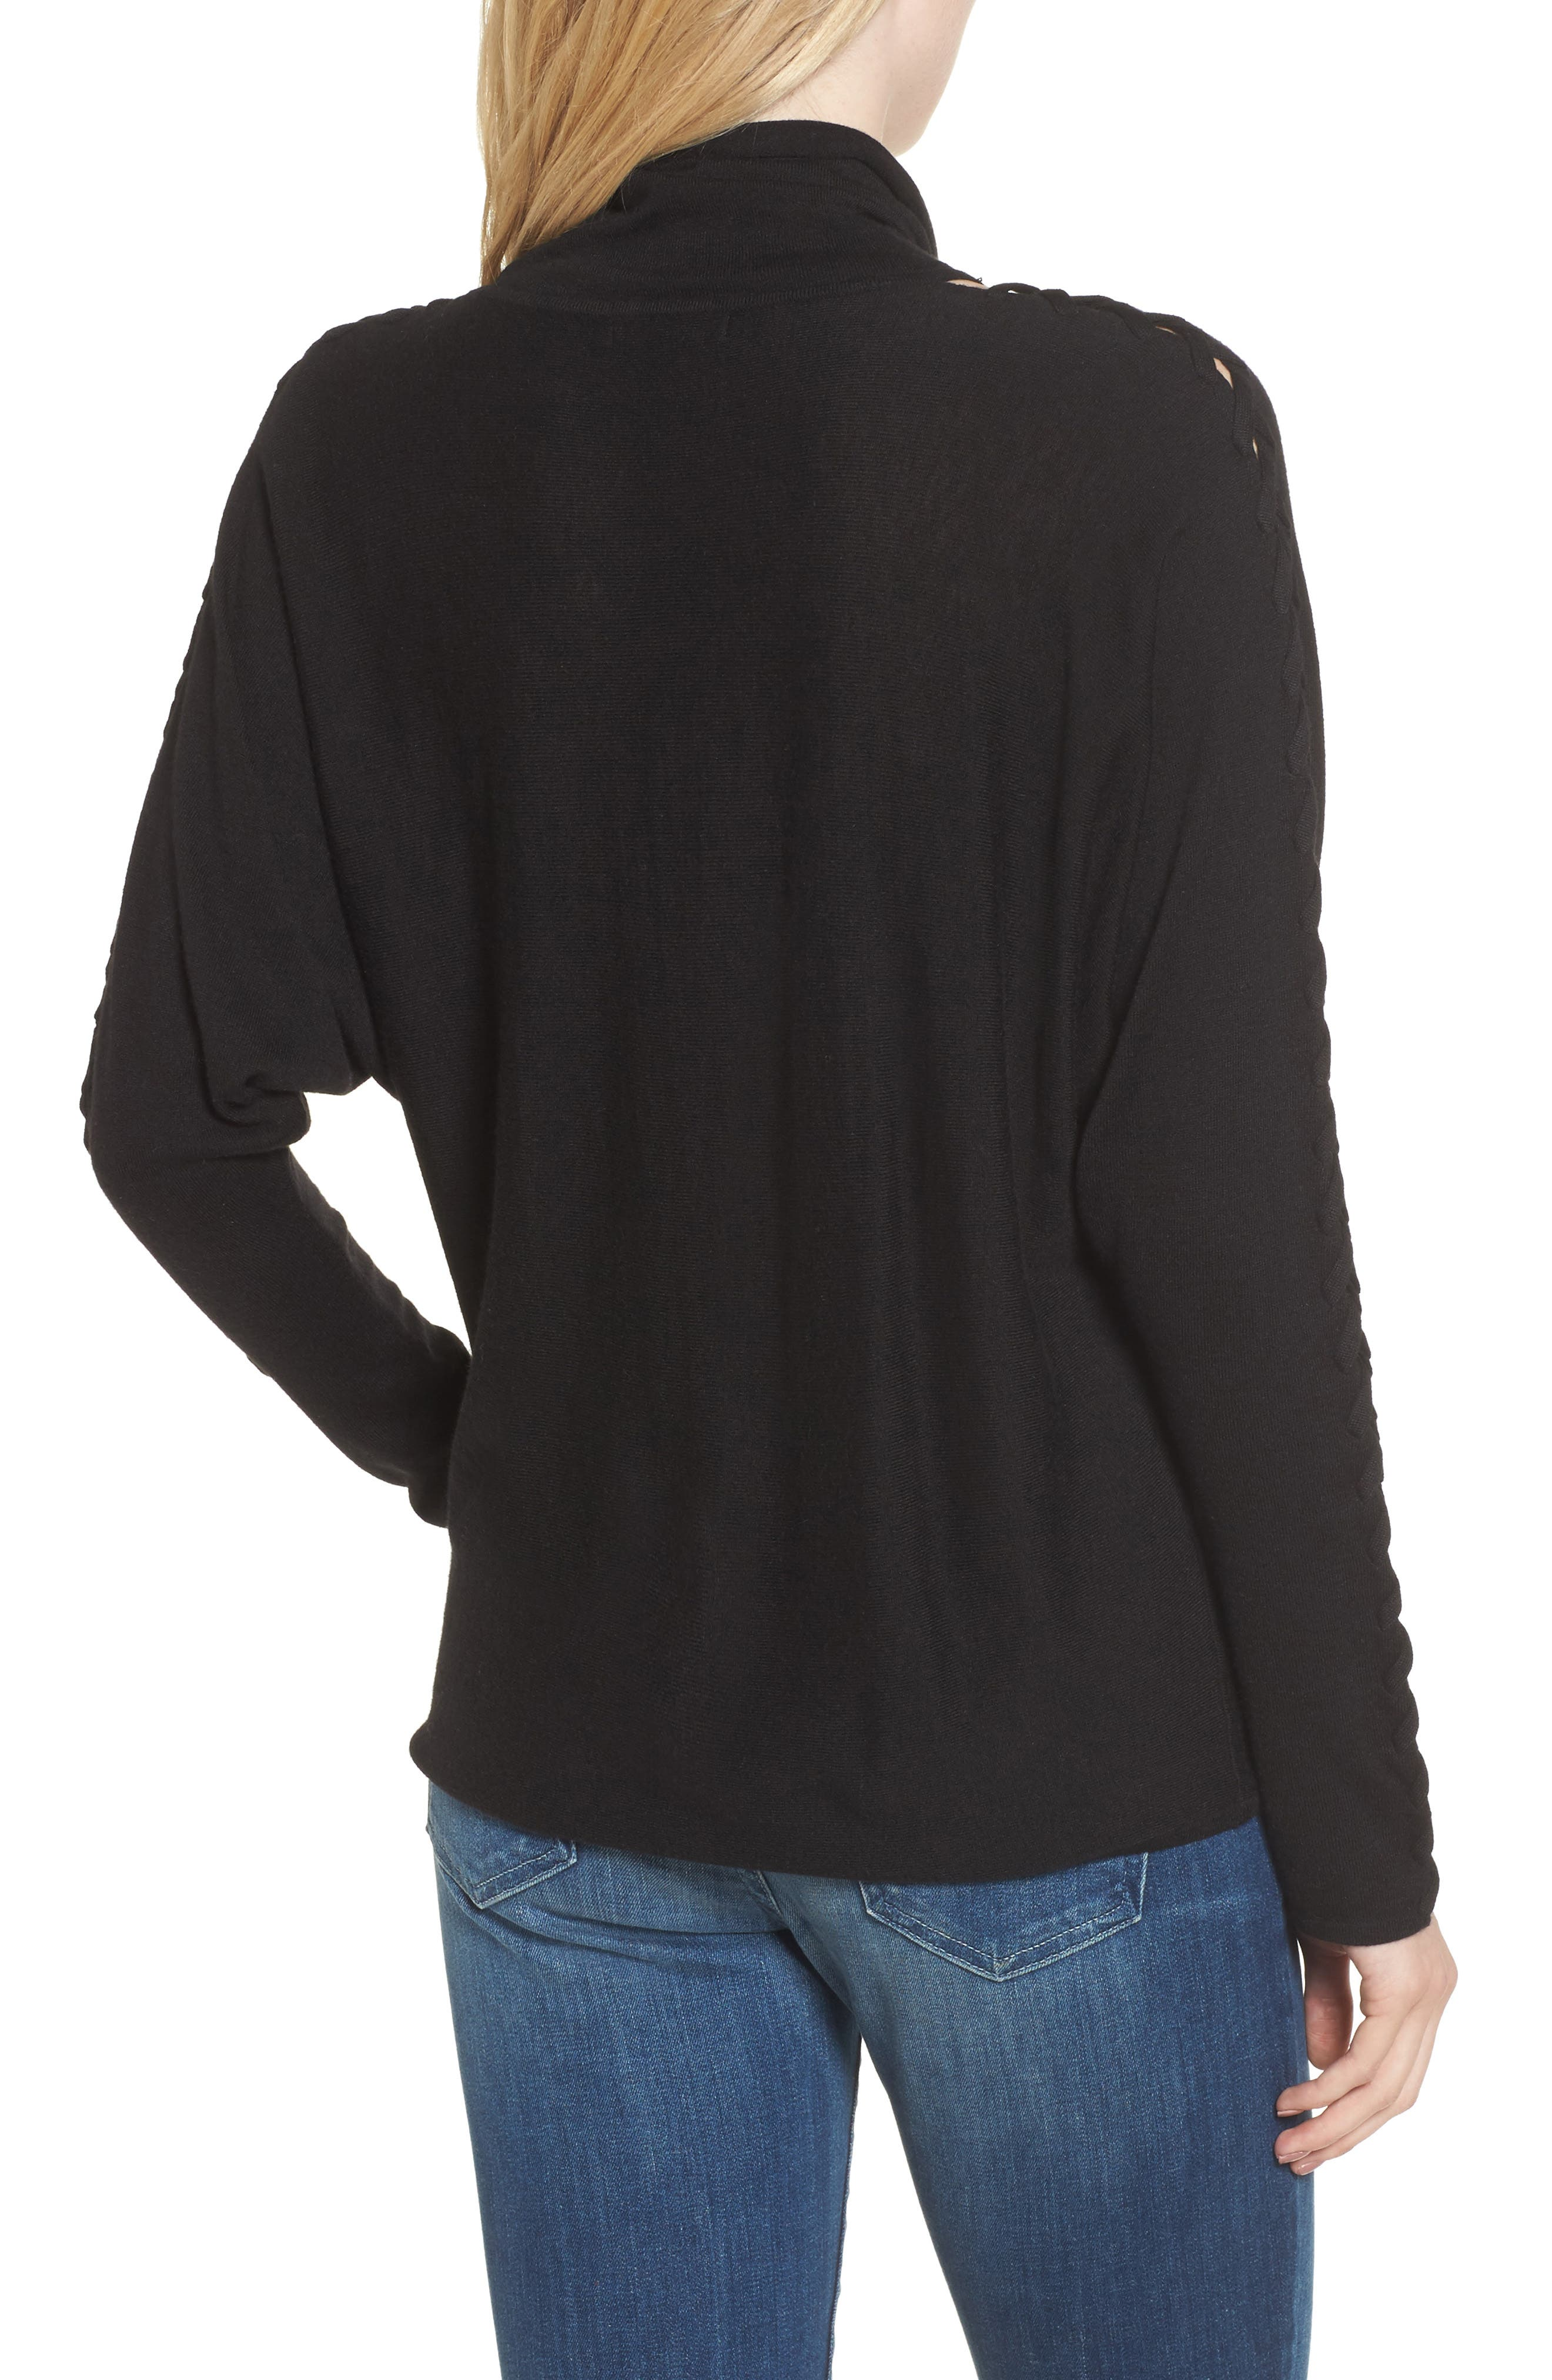 Victoire Turtleneck Sweater,                             Alternate thumbnail 3, color,